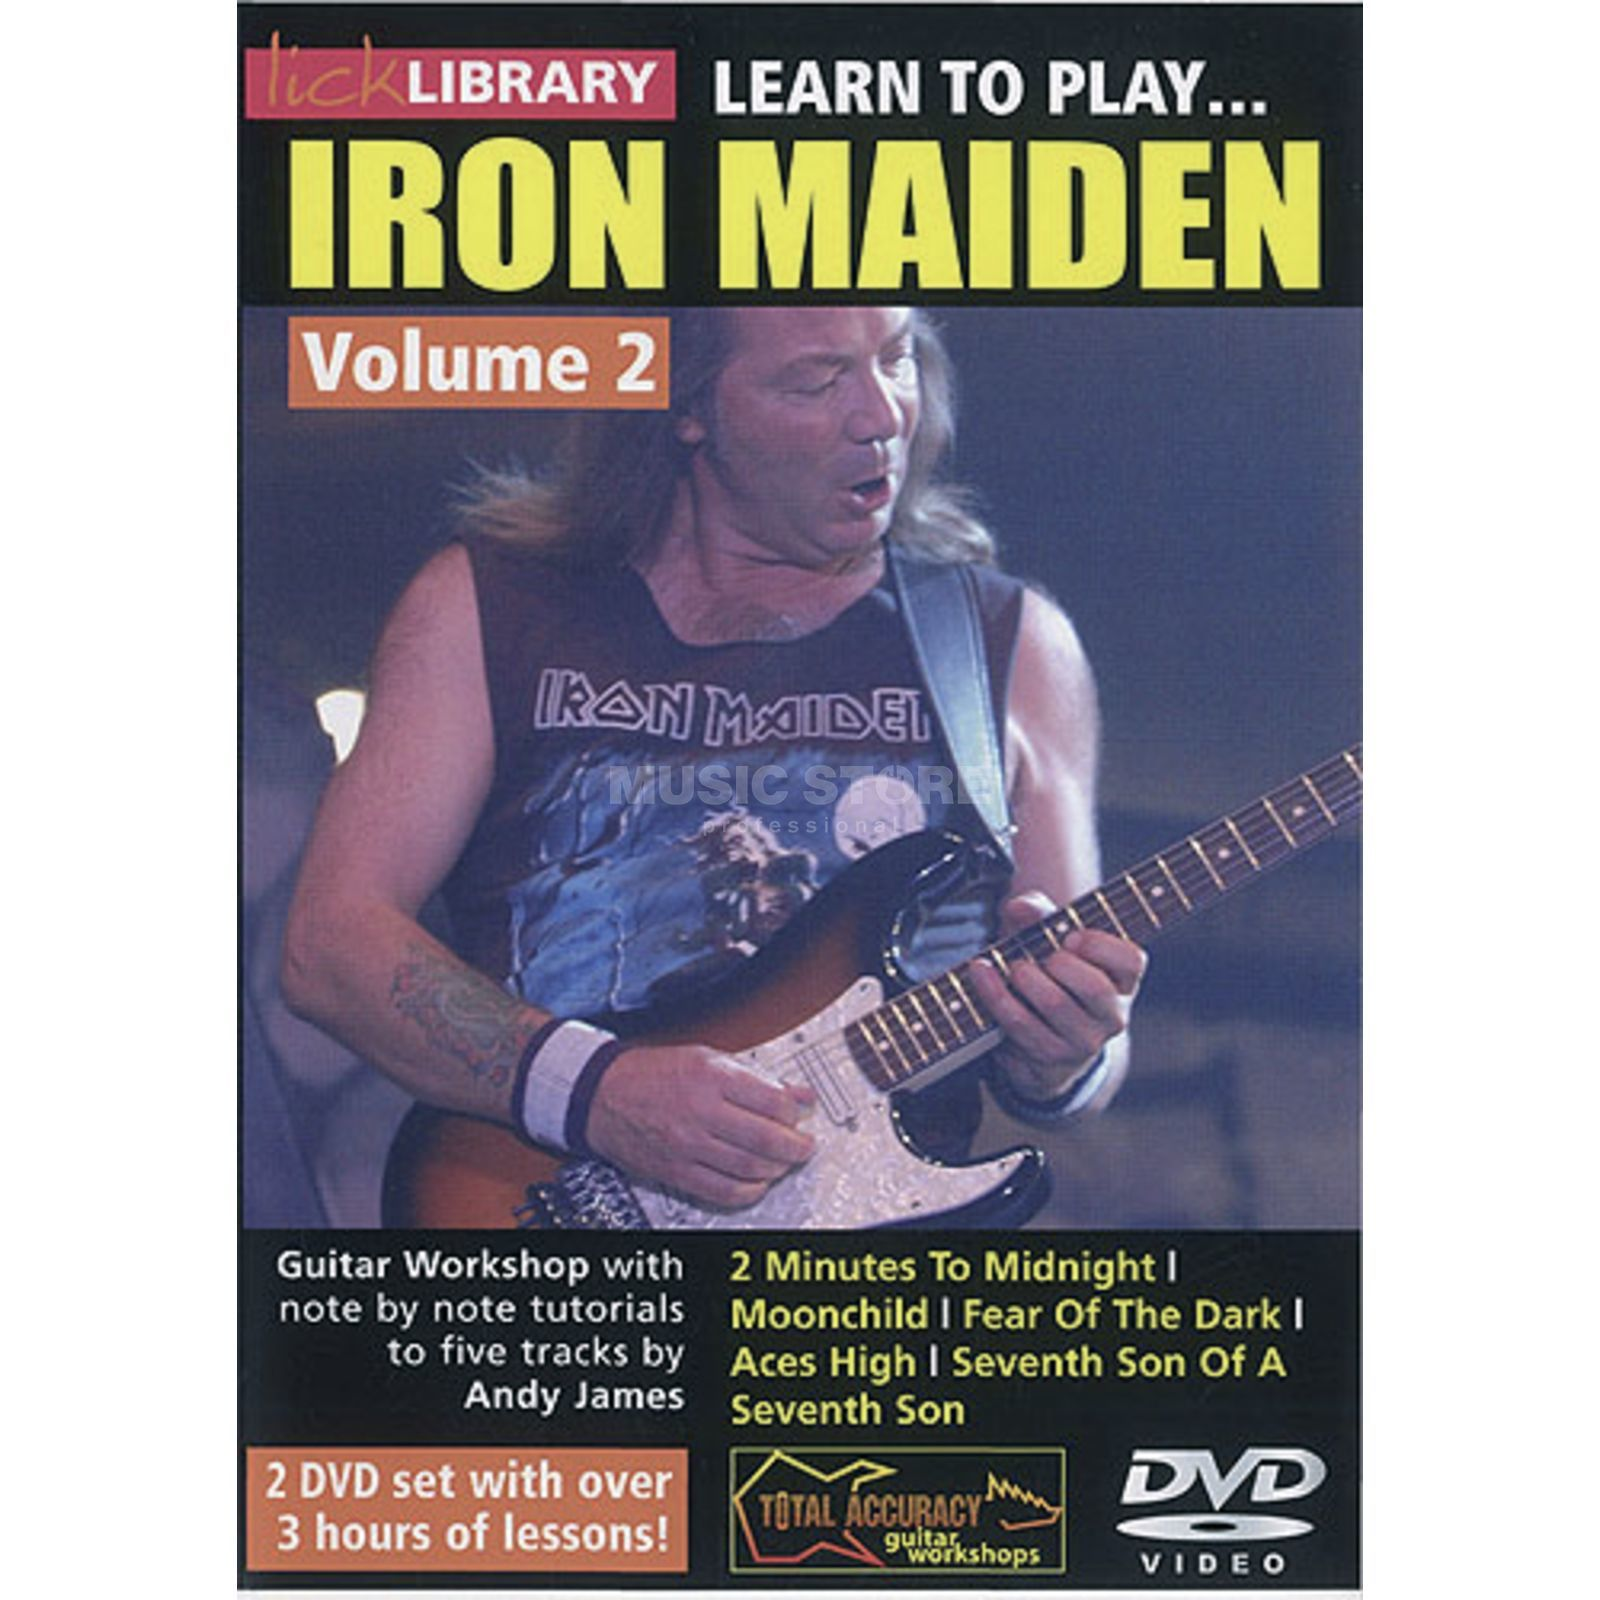 Roadrock International Lick Library: Learn To Play Iron Maiden 2 Produktbillede